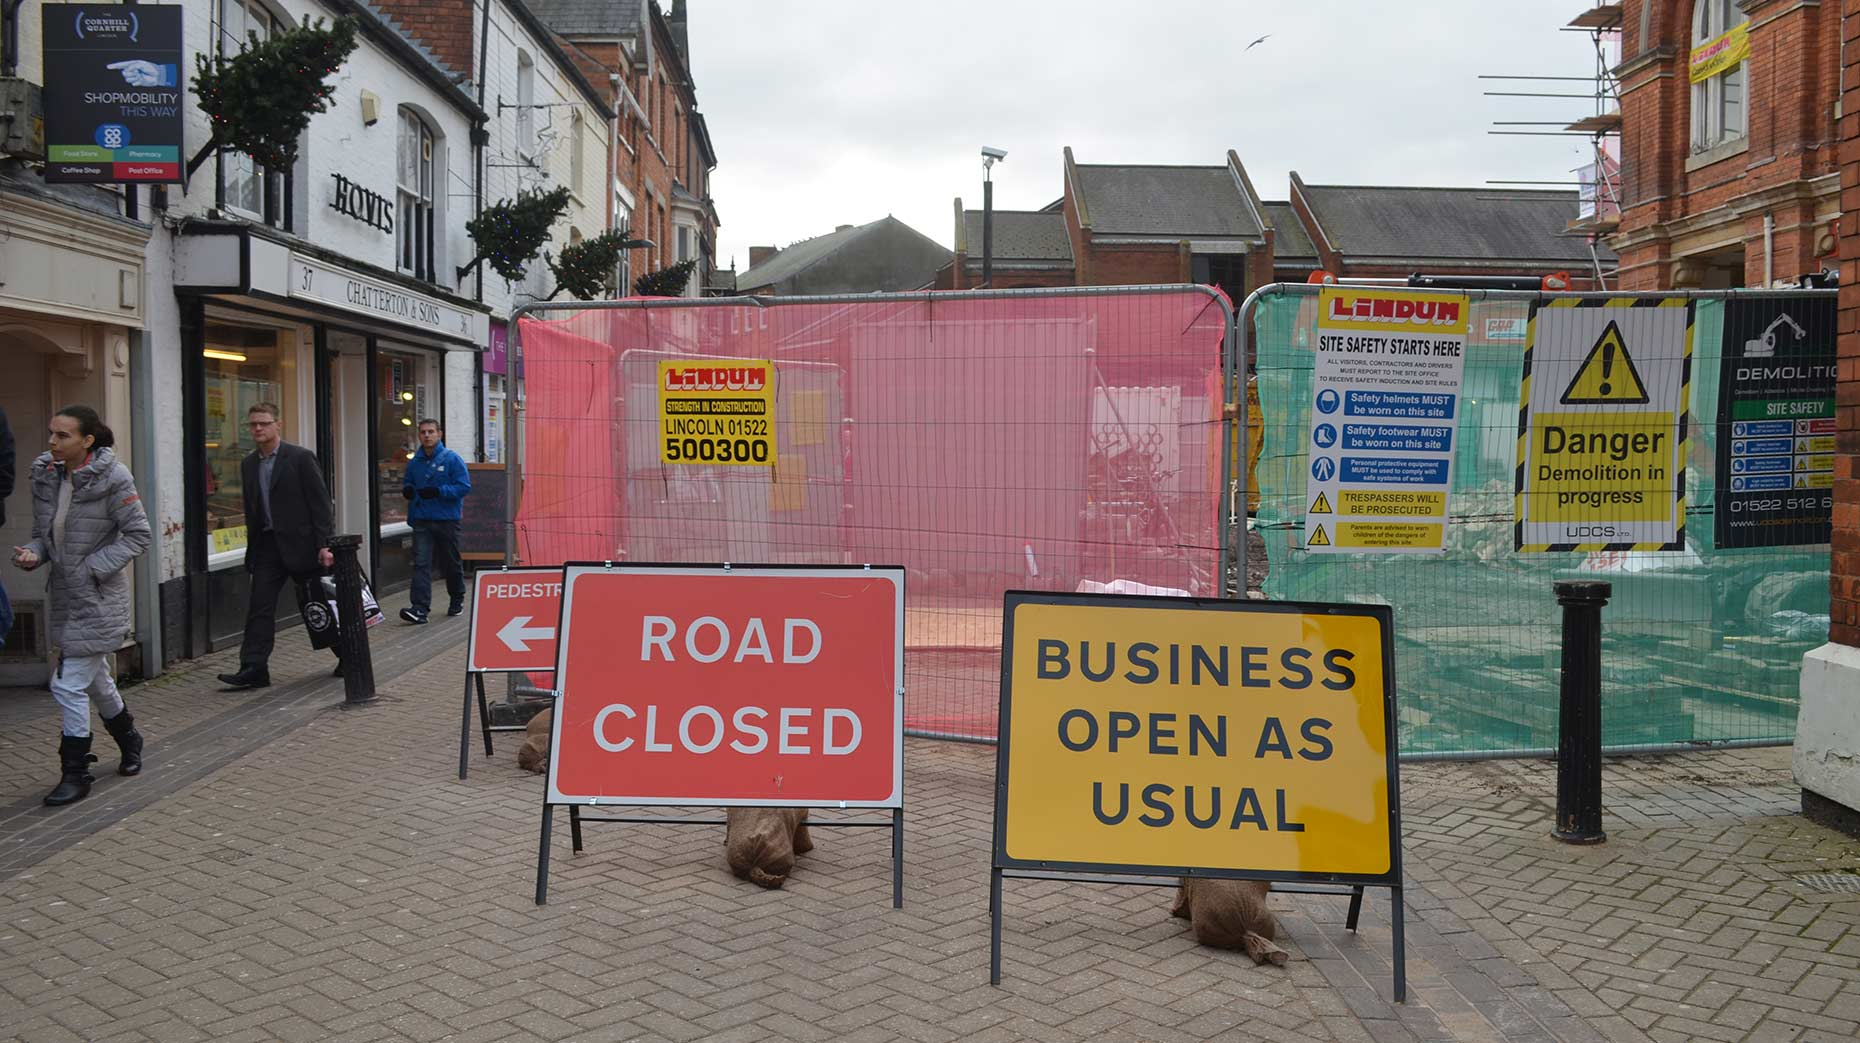 Work is ongoing to redevelop the Cornhill area, but businesses are getting into the Christmas spirit. Photo: The Lincolnite